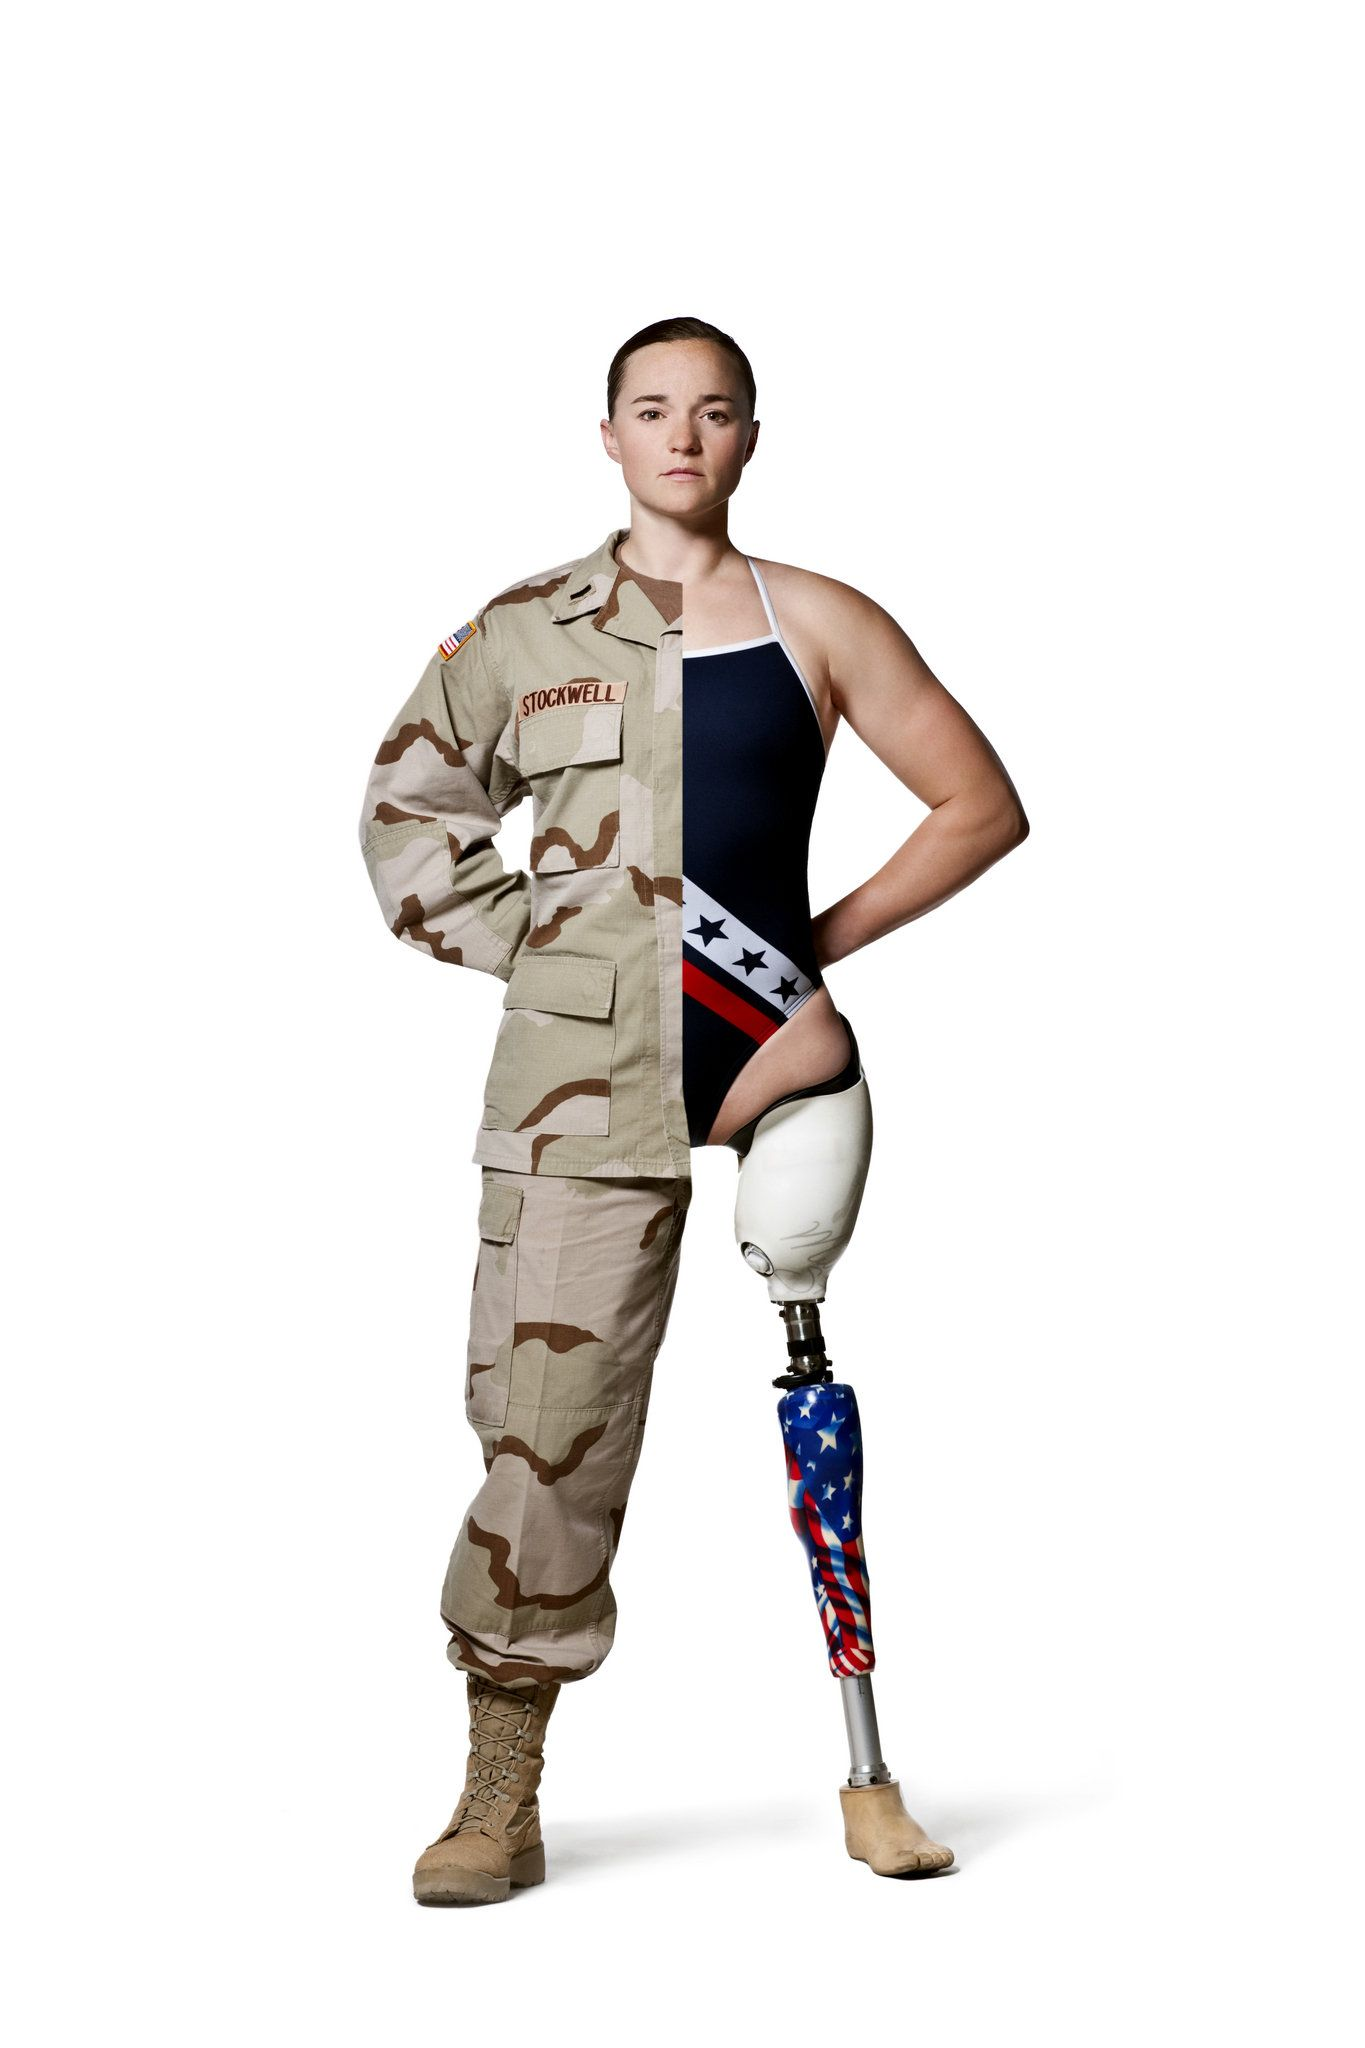 Tom kennedy us army claims service - Melissa Stockwell Is A Retired Us Army First Lieutenant She Was The First Female Soldier